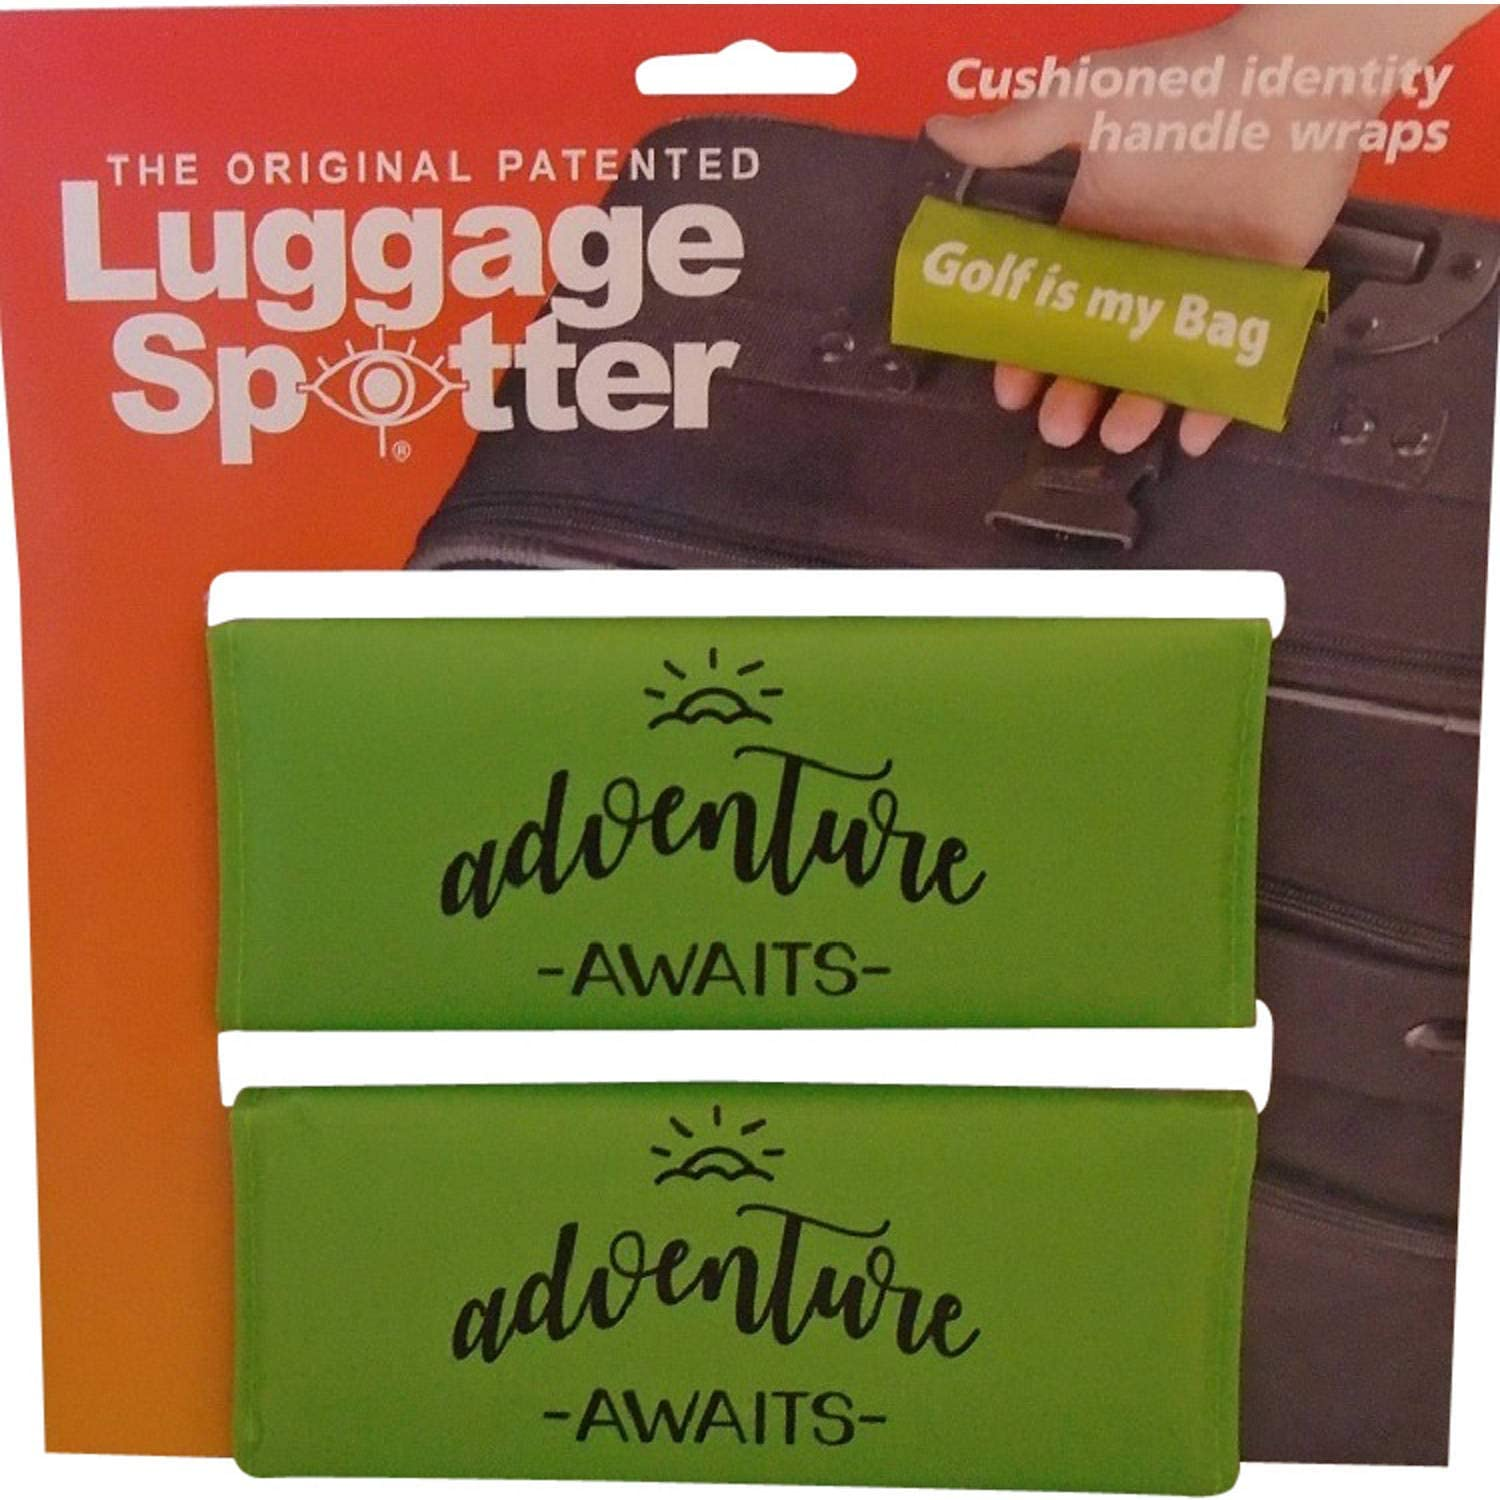 Great Gift! Luggage Spotter NOT Your Bag Lime Green Luggage Handle Wrap//Luggage Tag 2 Pack